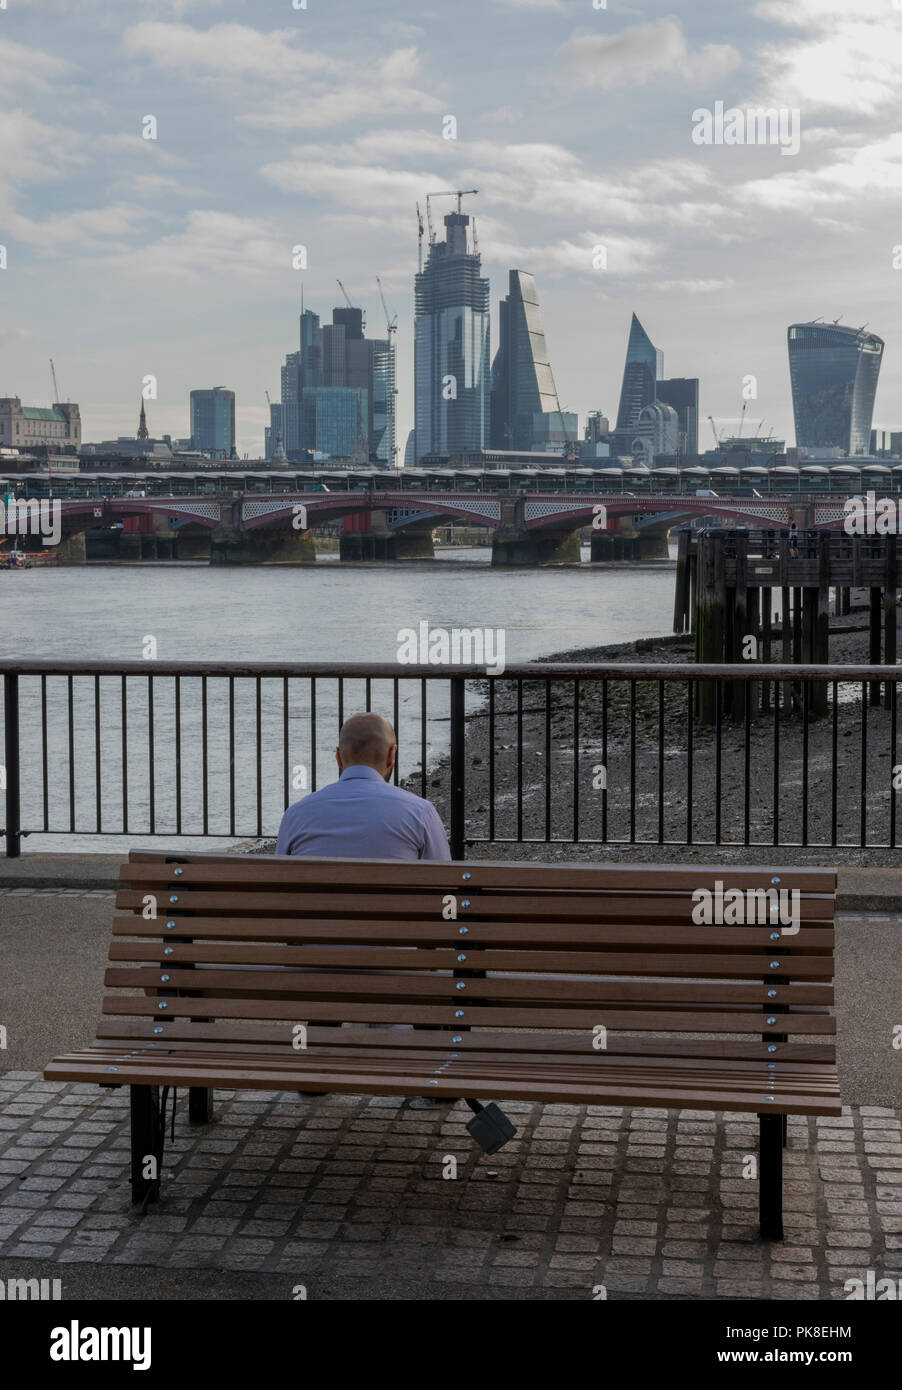 a man sitting on a wooden park bench on the south bank of the river thames in central London looking across the river towards the city of London. - Stock Image